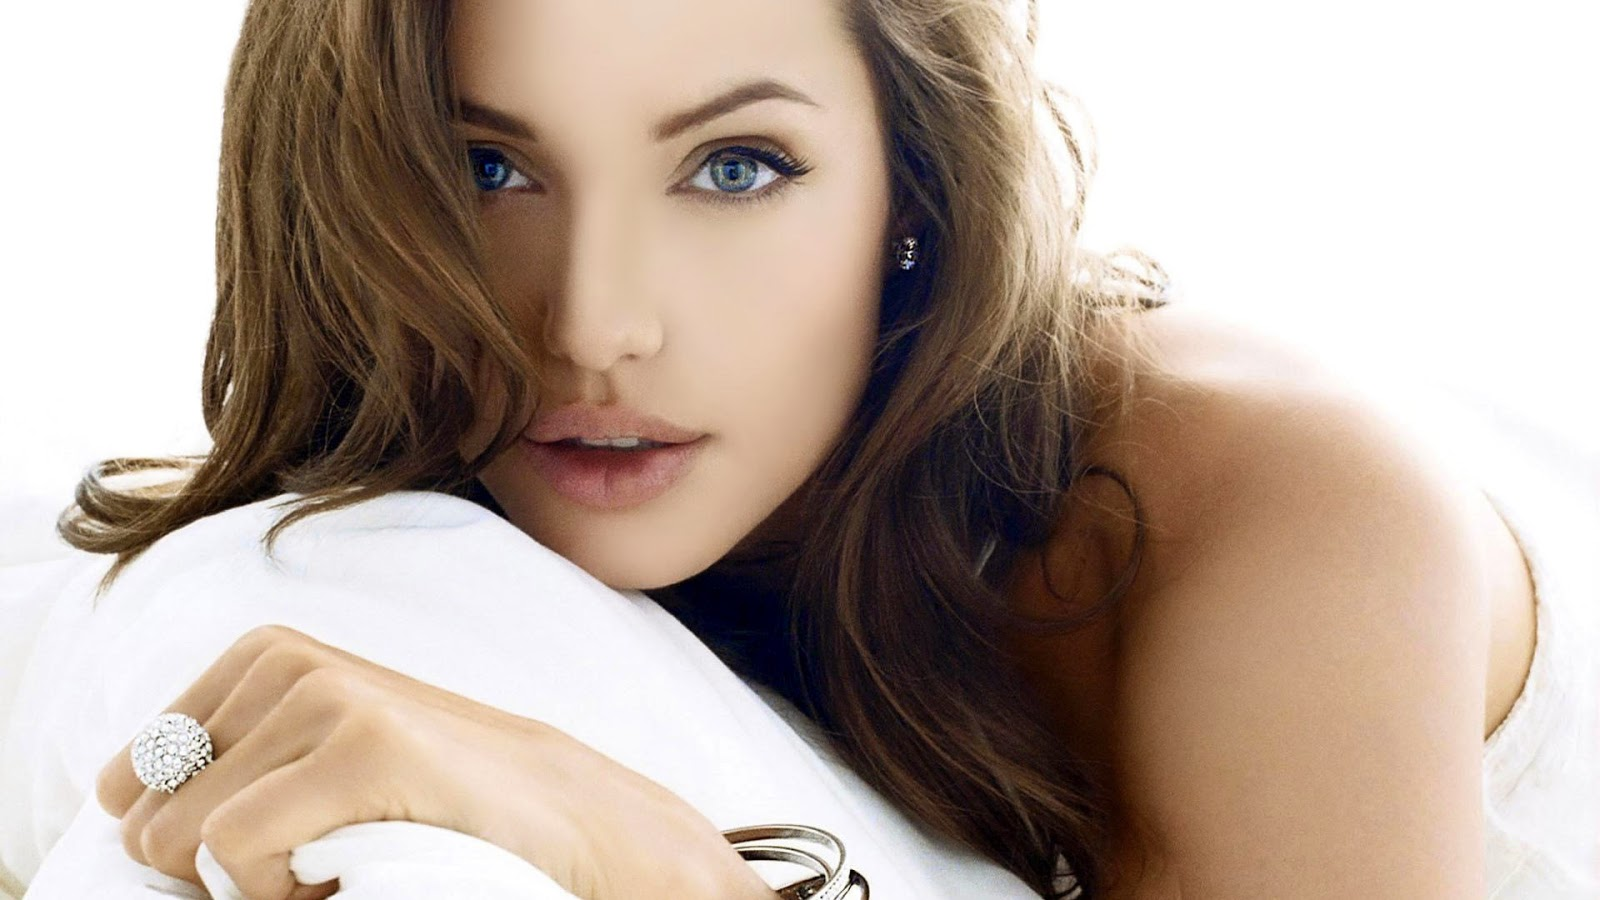 Pictures of Angelina Jolie Wallpaper